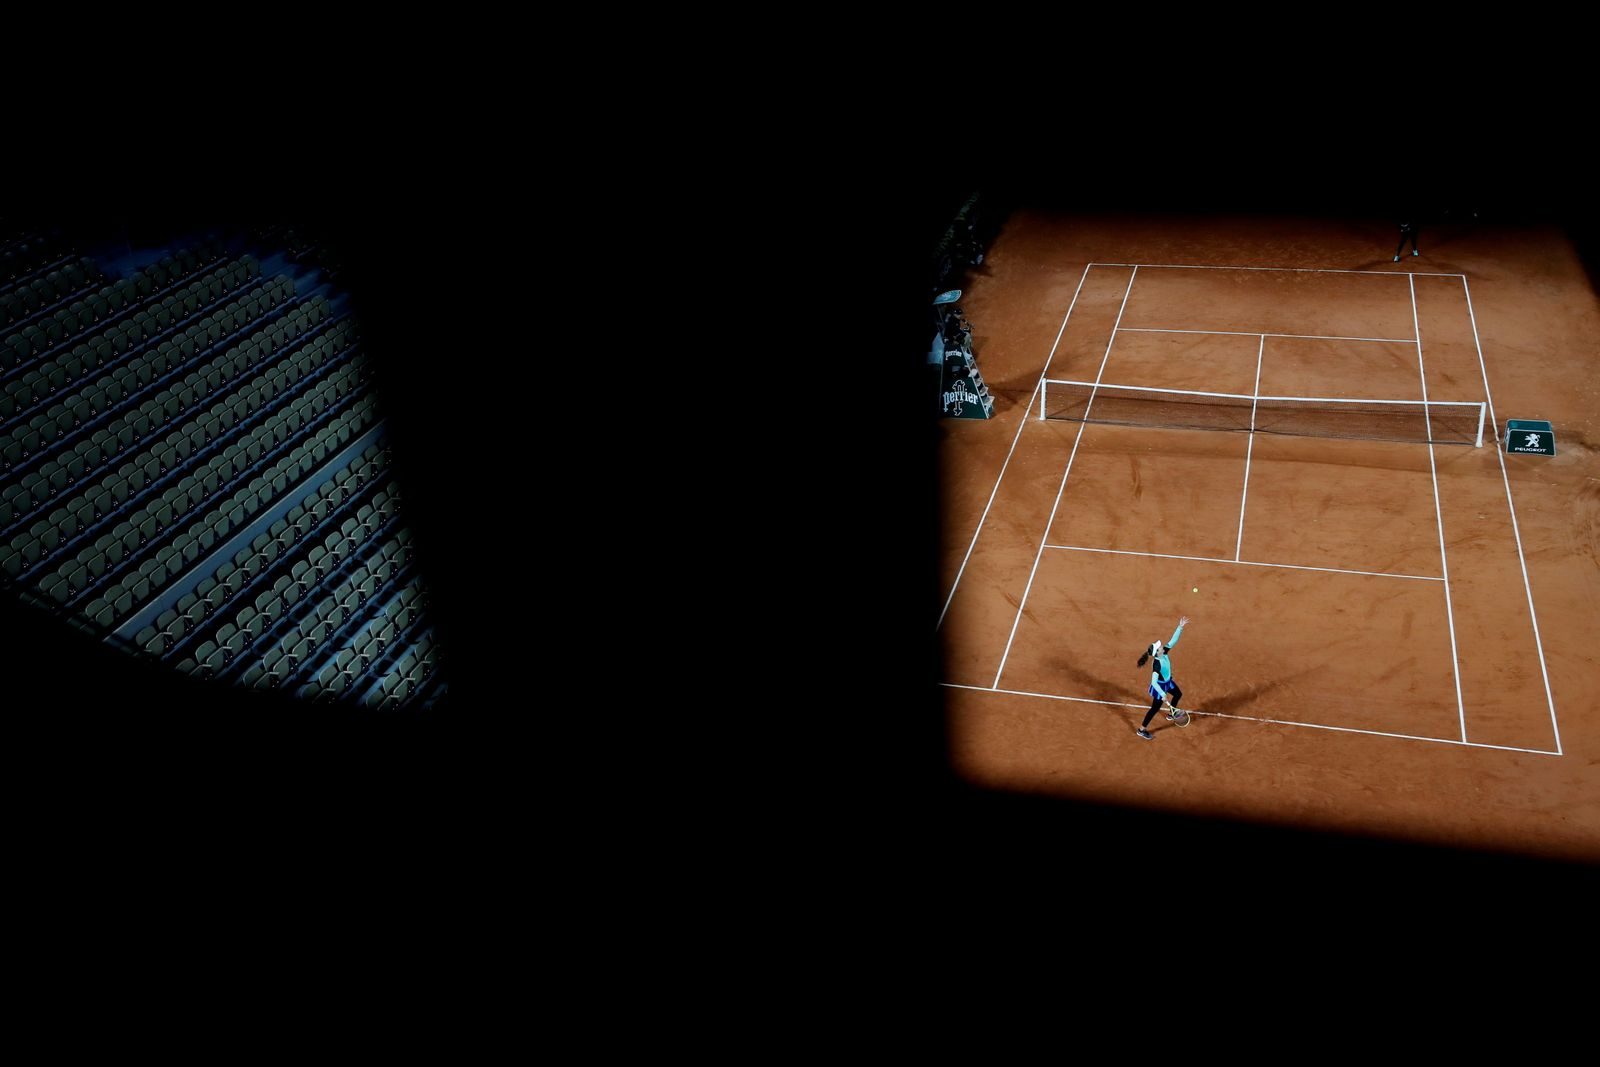 Sports Pictures of the Year